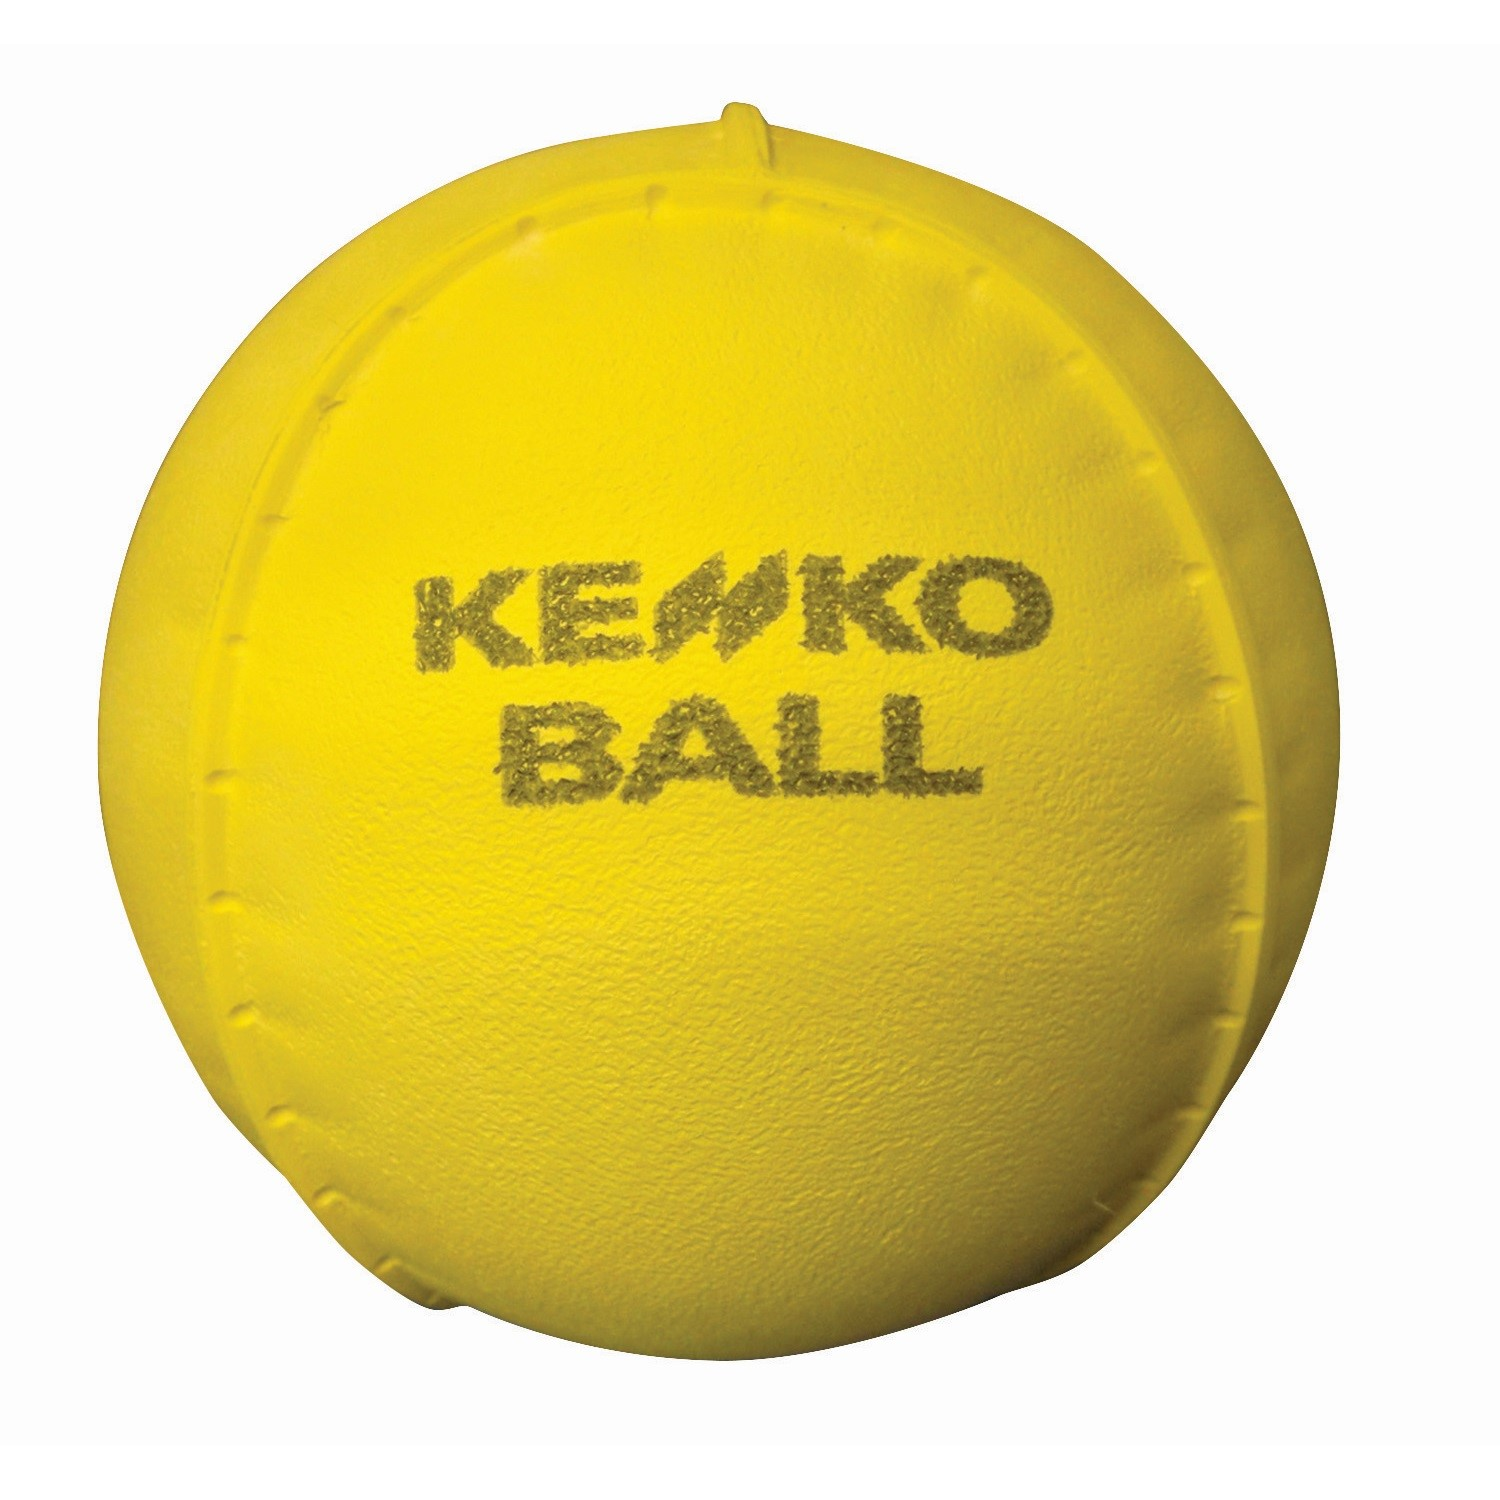 "S14YUR Kenko 14"" Softball Yellow MAIN"